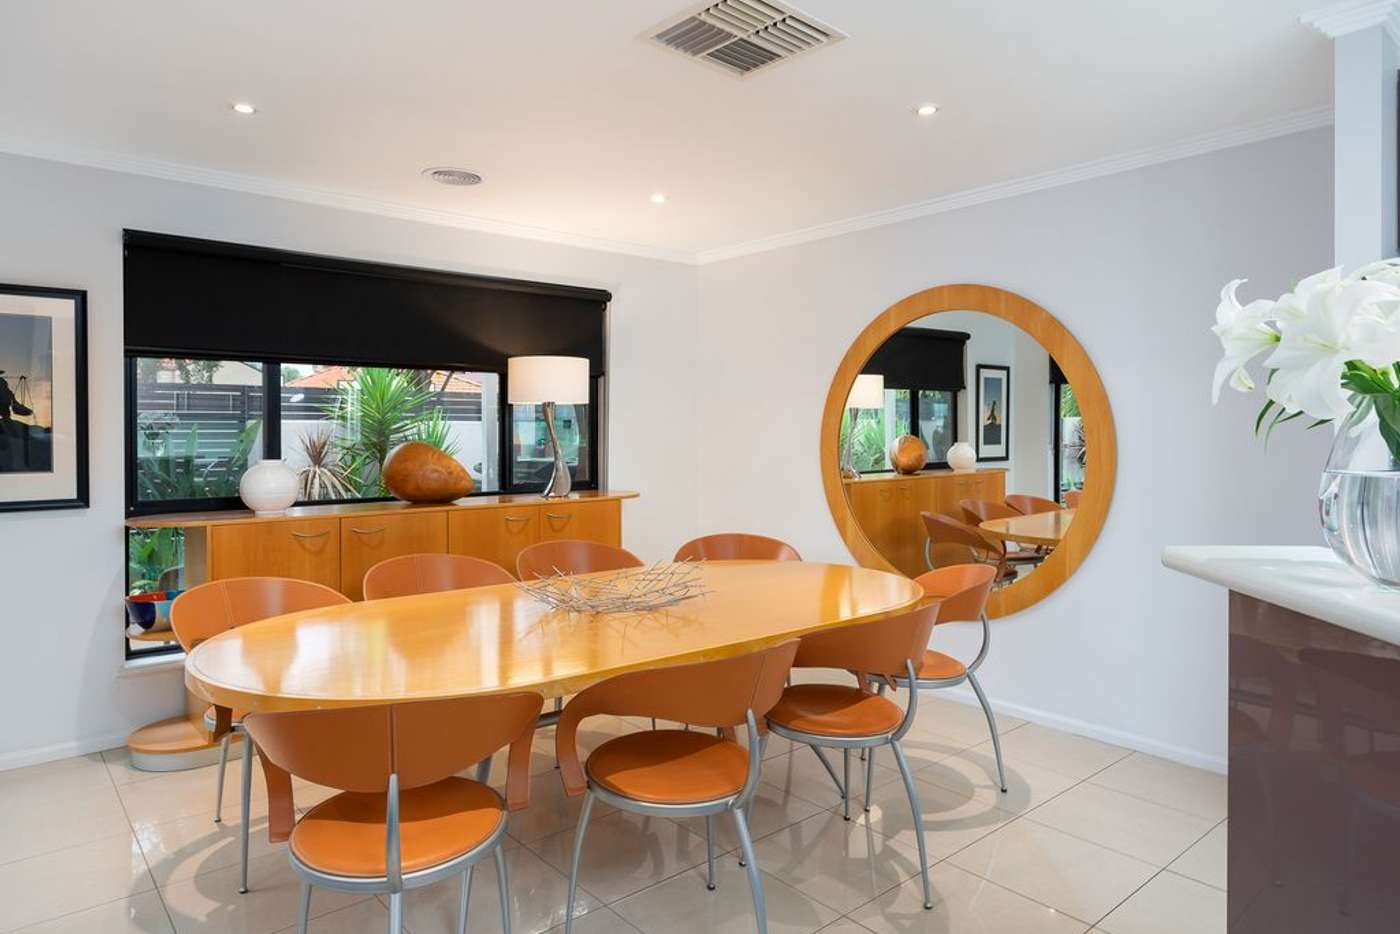 Fifth view of Homely house listing, 22 Galing Place, Wagga Wagga NSW 2650